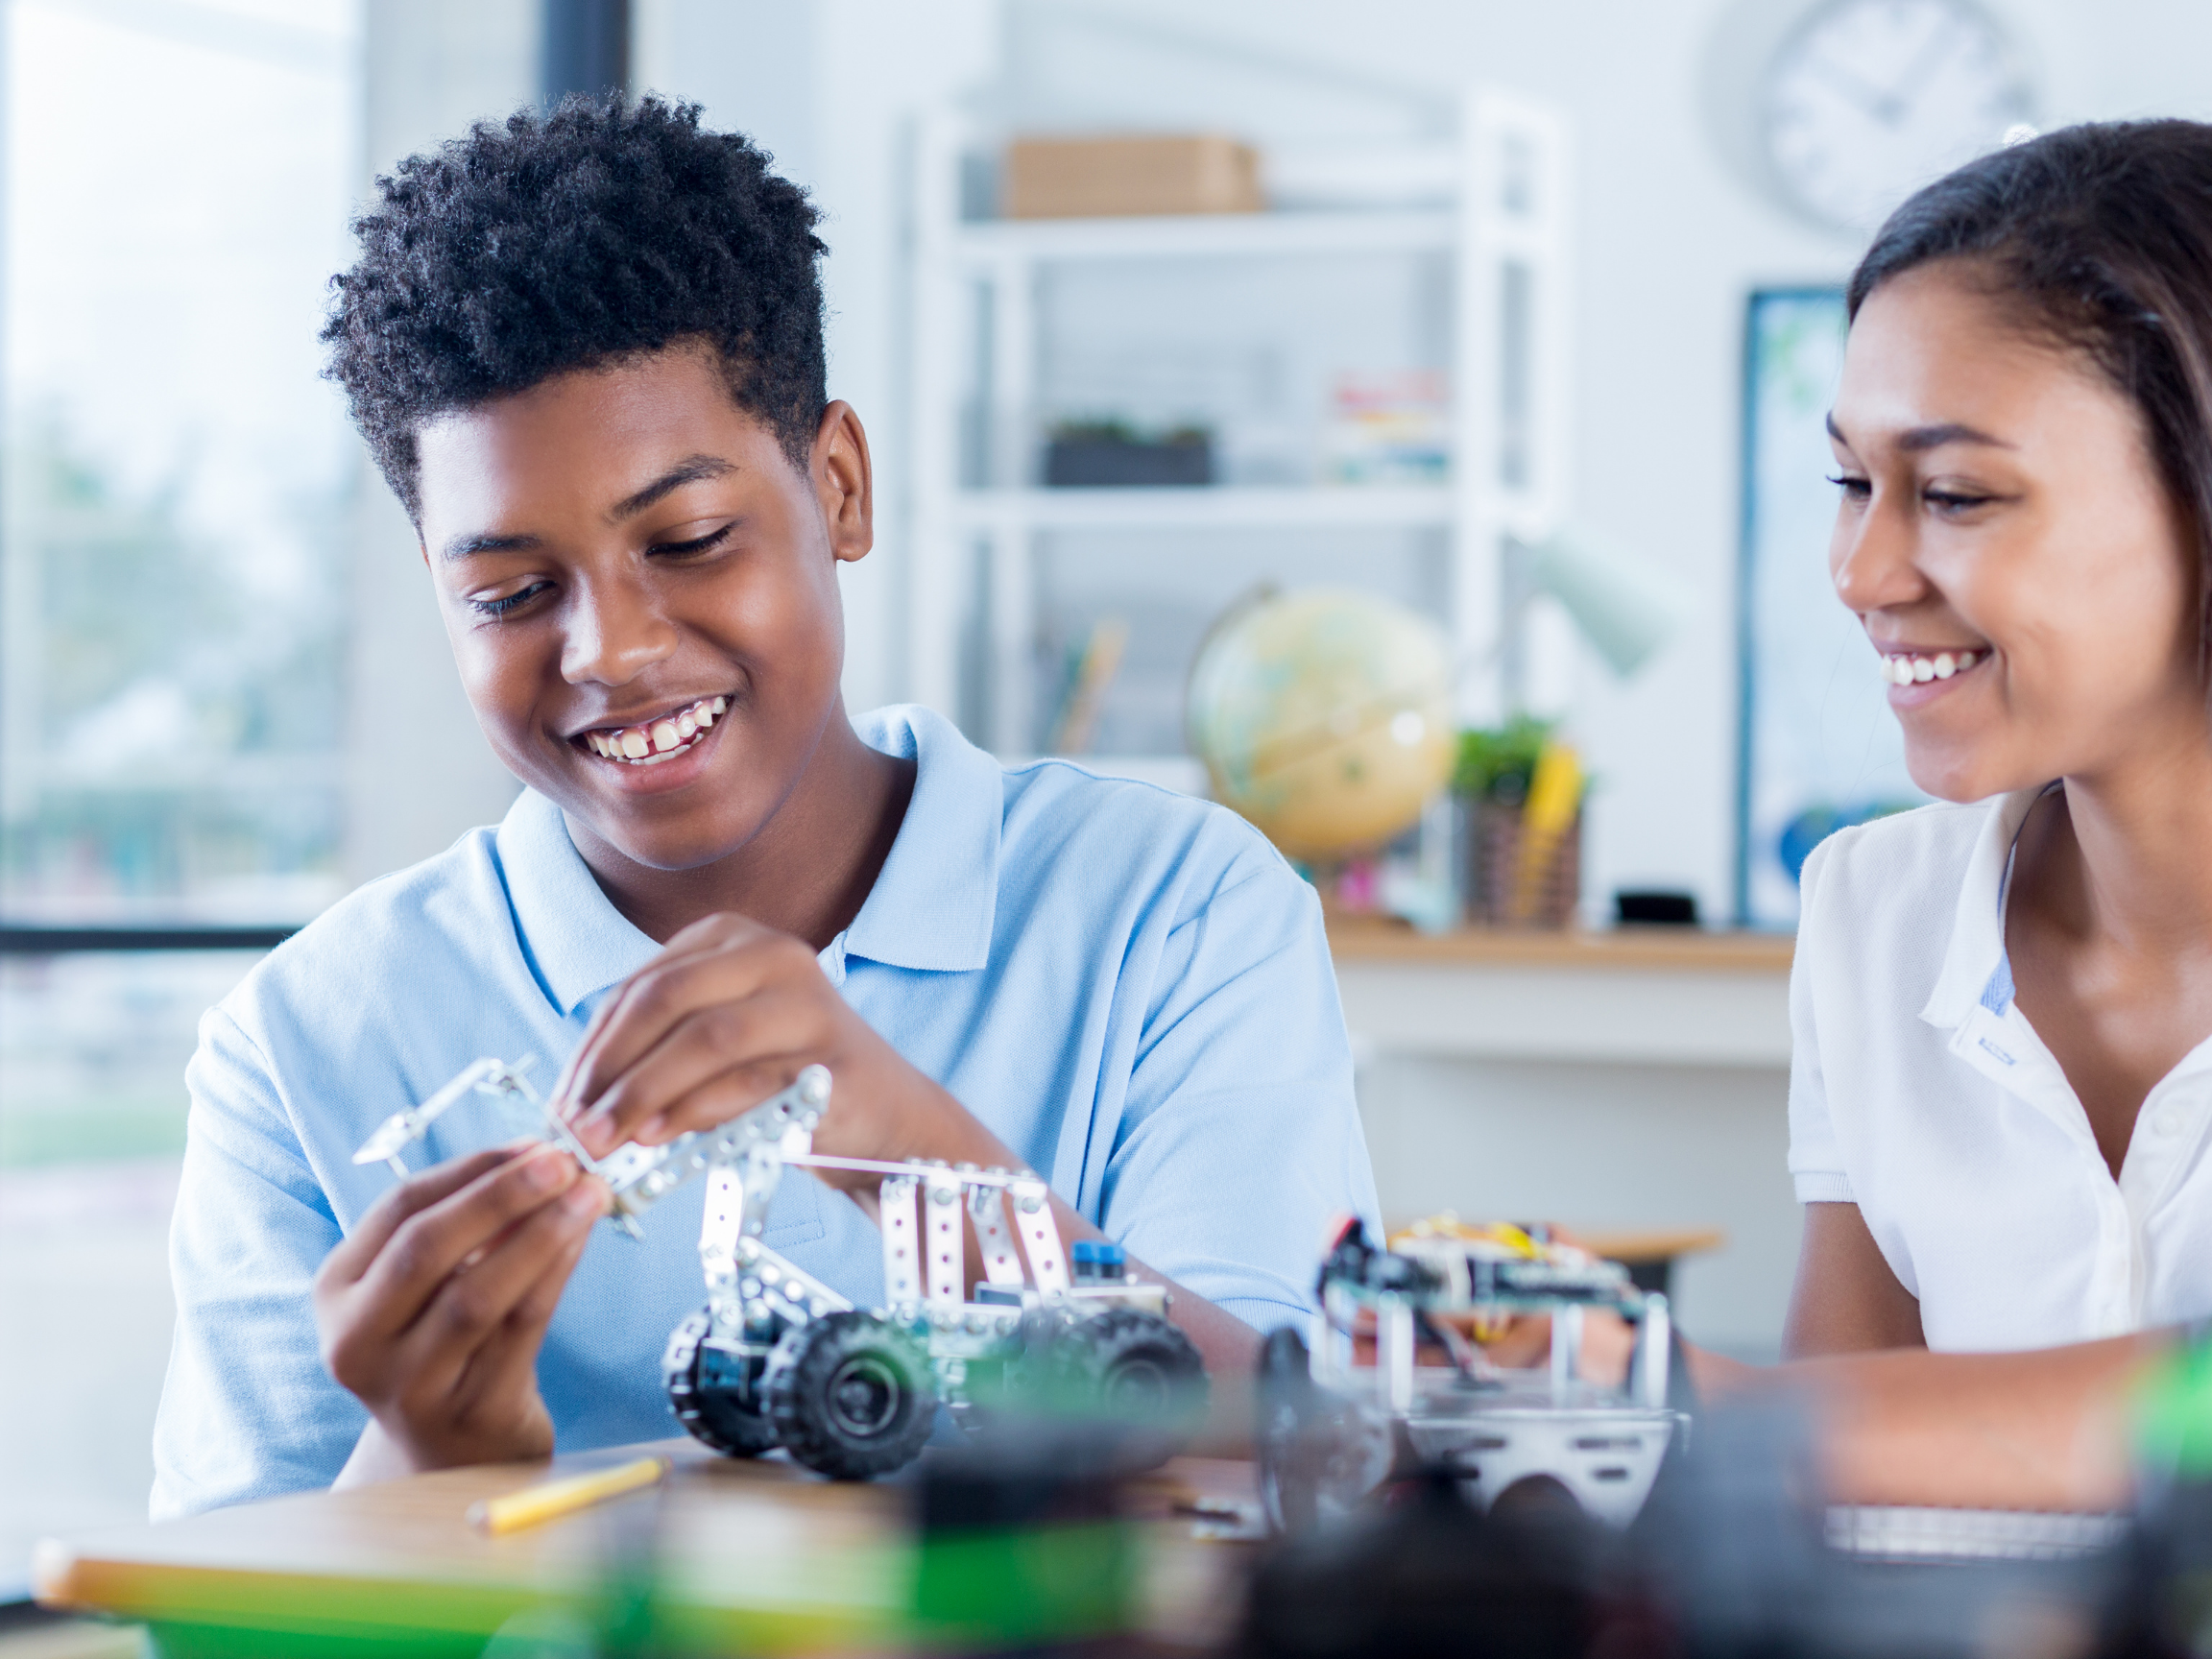 Photo of black youth working with robot